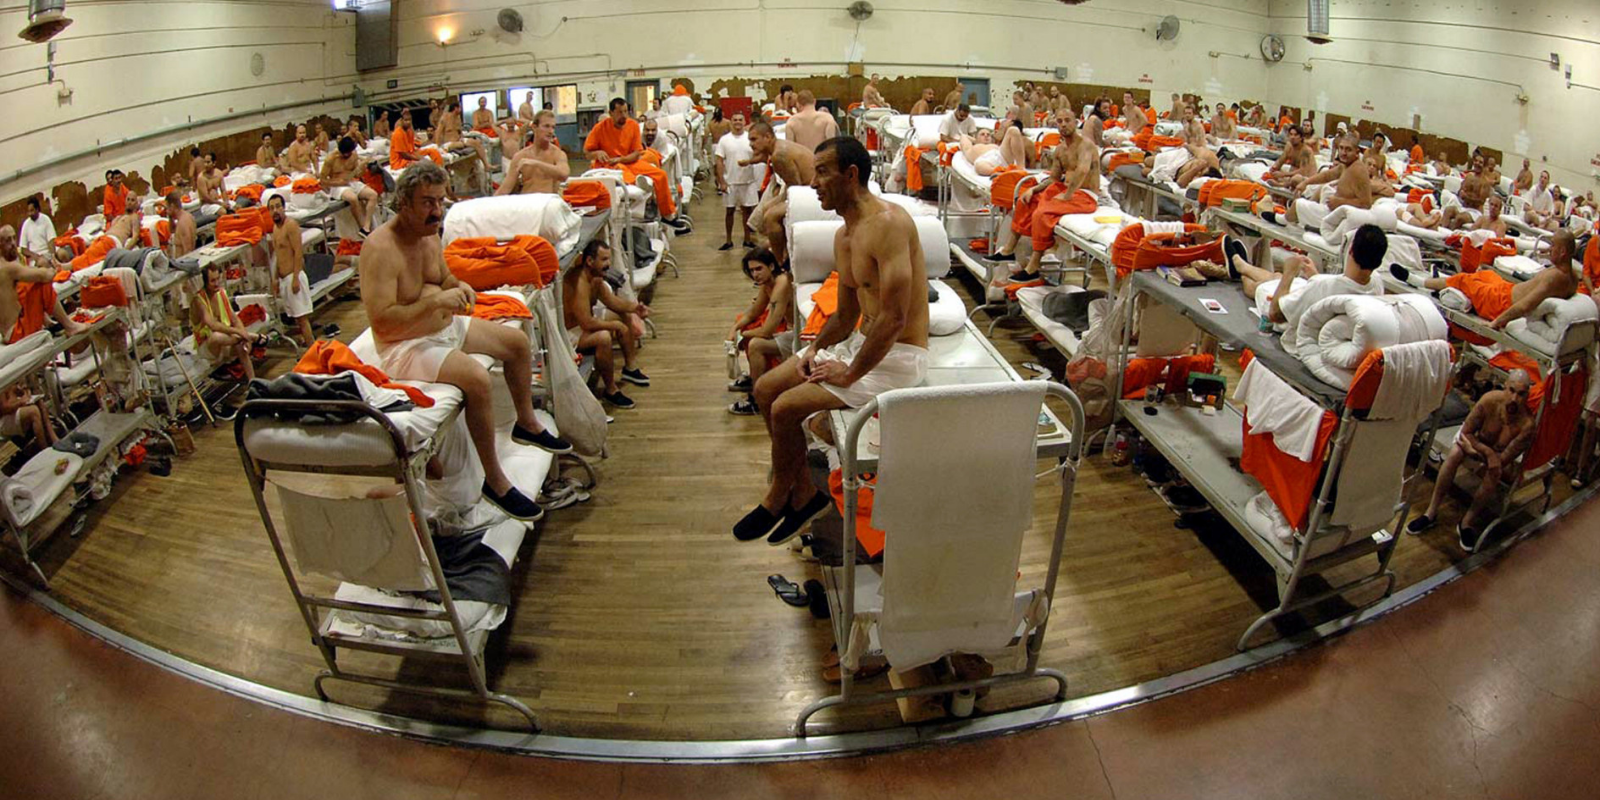 California plans to release an additional 76,000 prisoners, including violent felons, as part of early release program